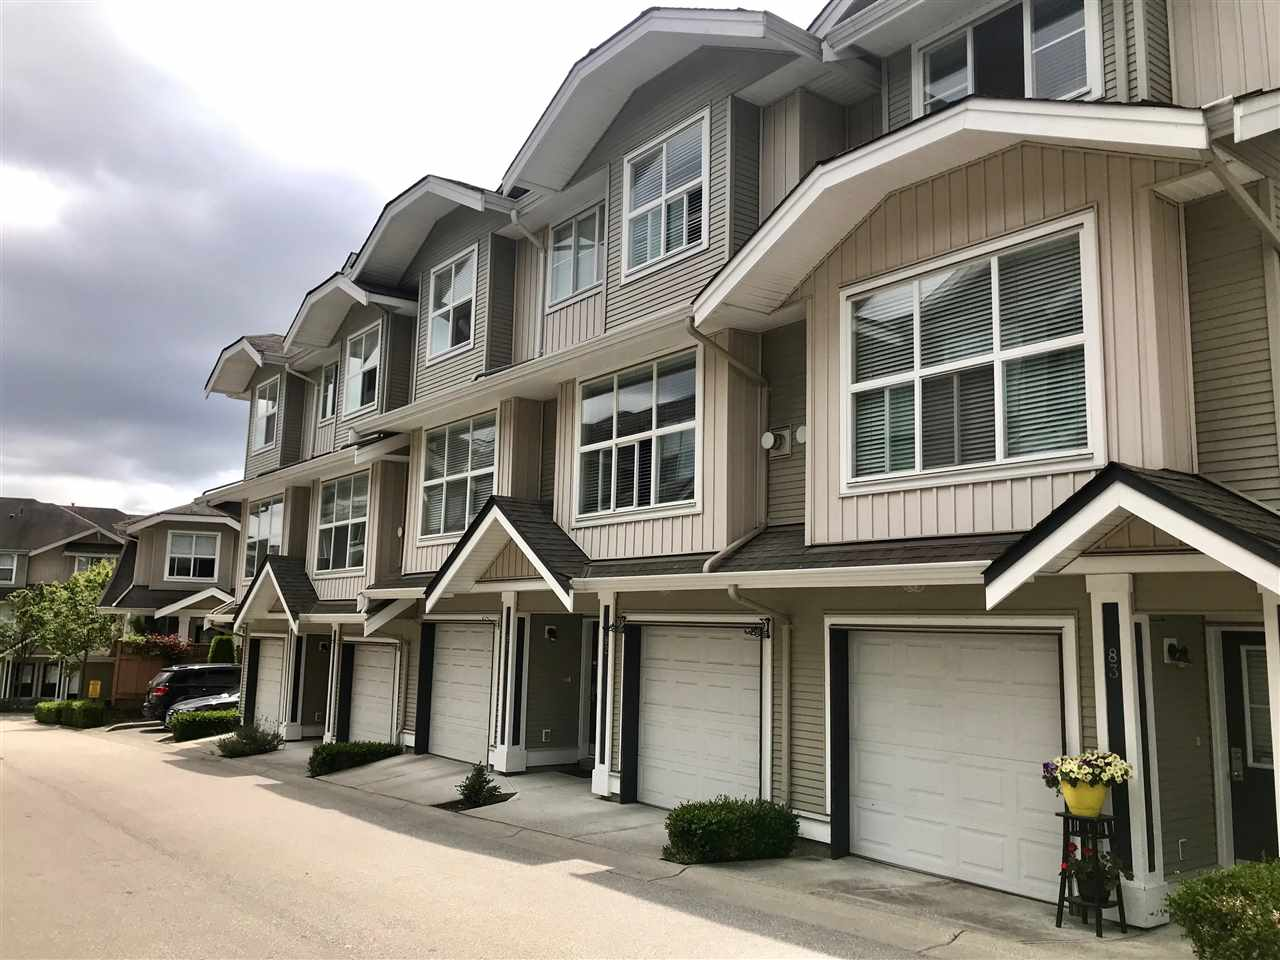 Removed: 81 - 20460 66 Avenue, Langley, BC - Removed on 2019-09-07 06:09:21